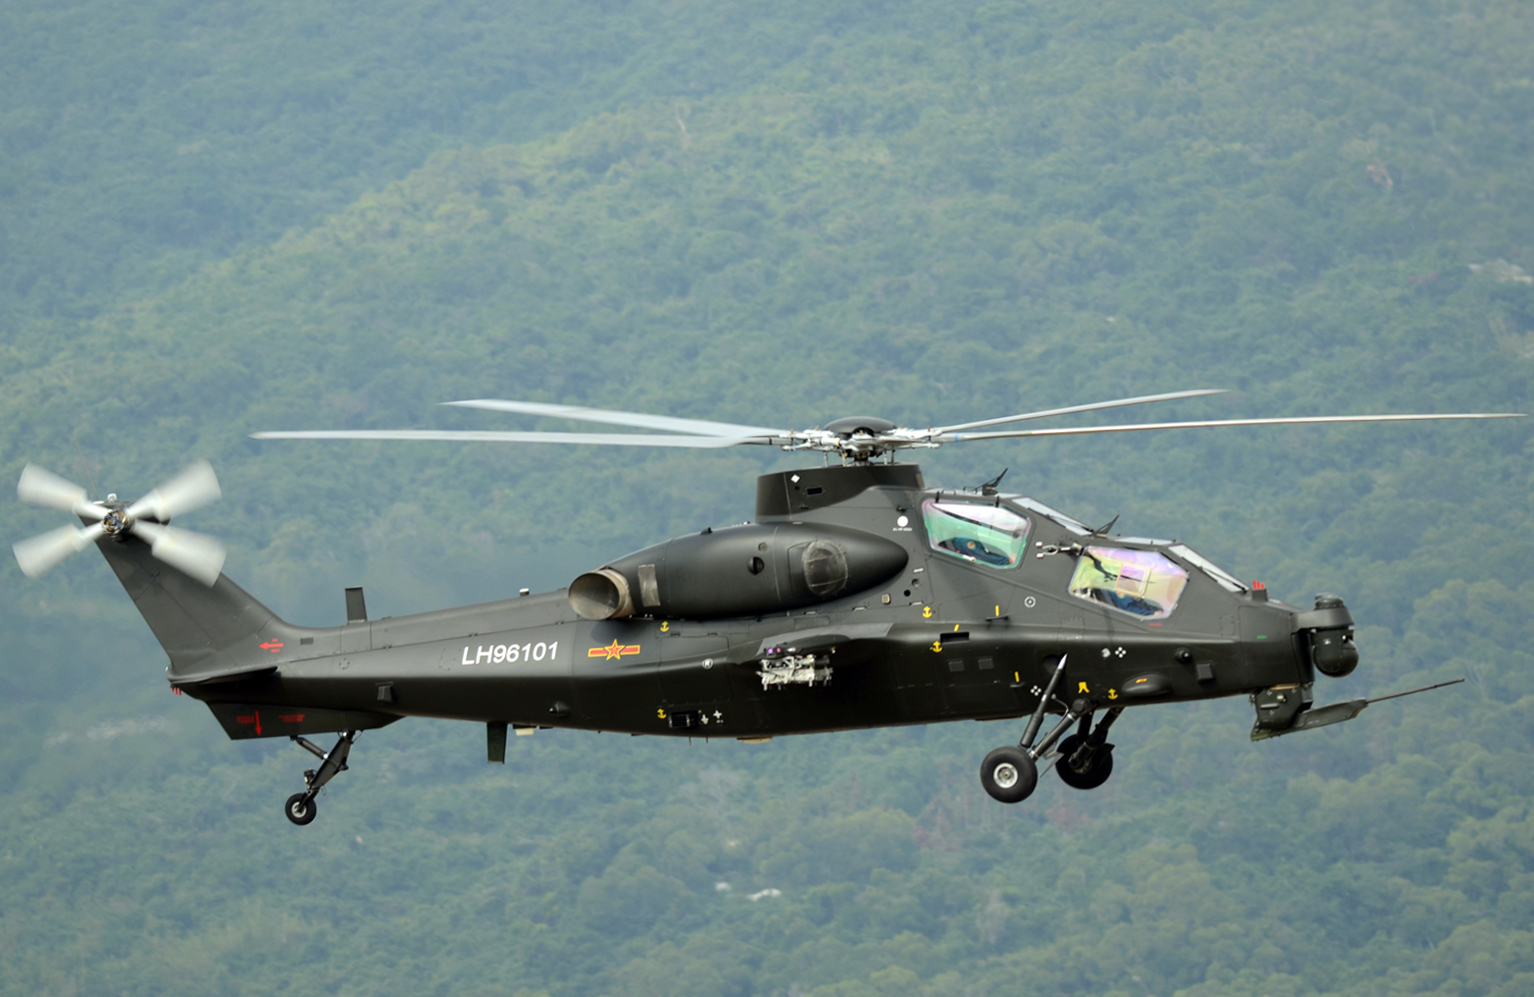 Helicopters, Attack helicopter and Chinese on Pinterest